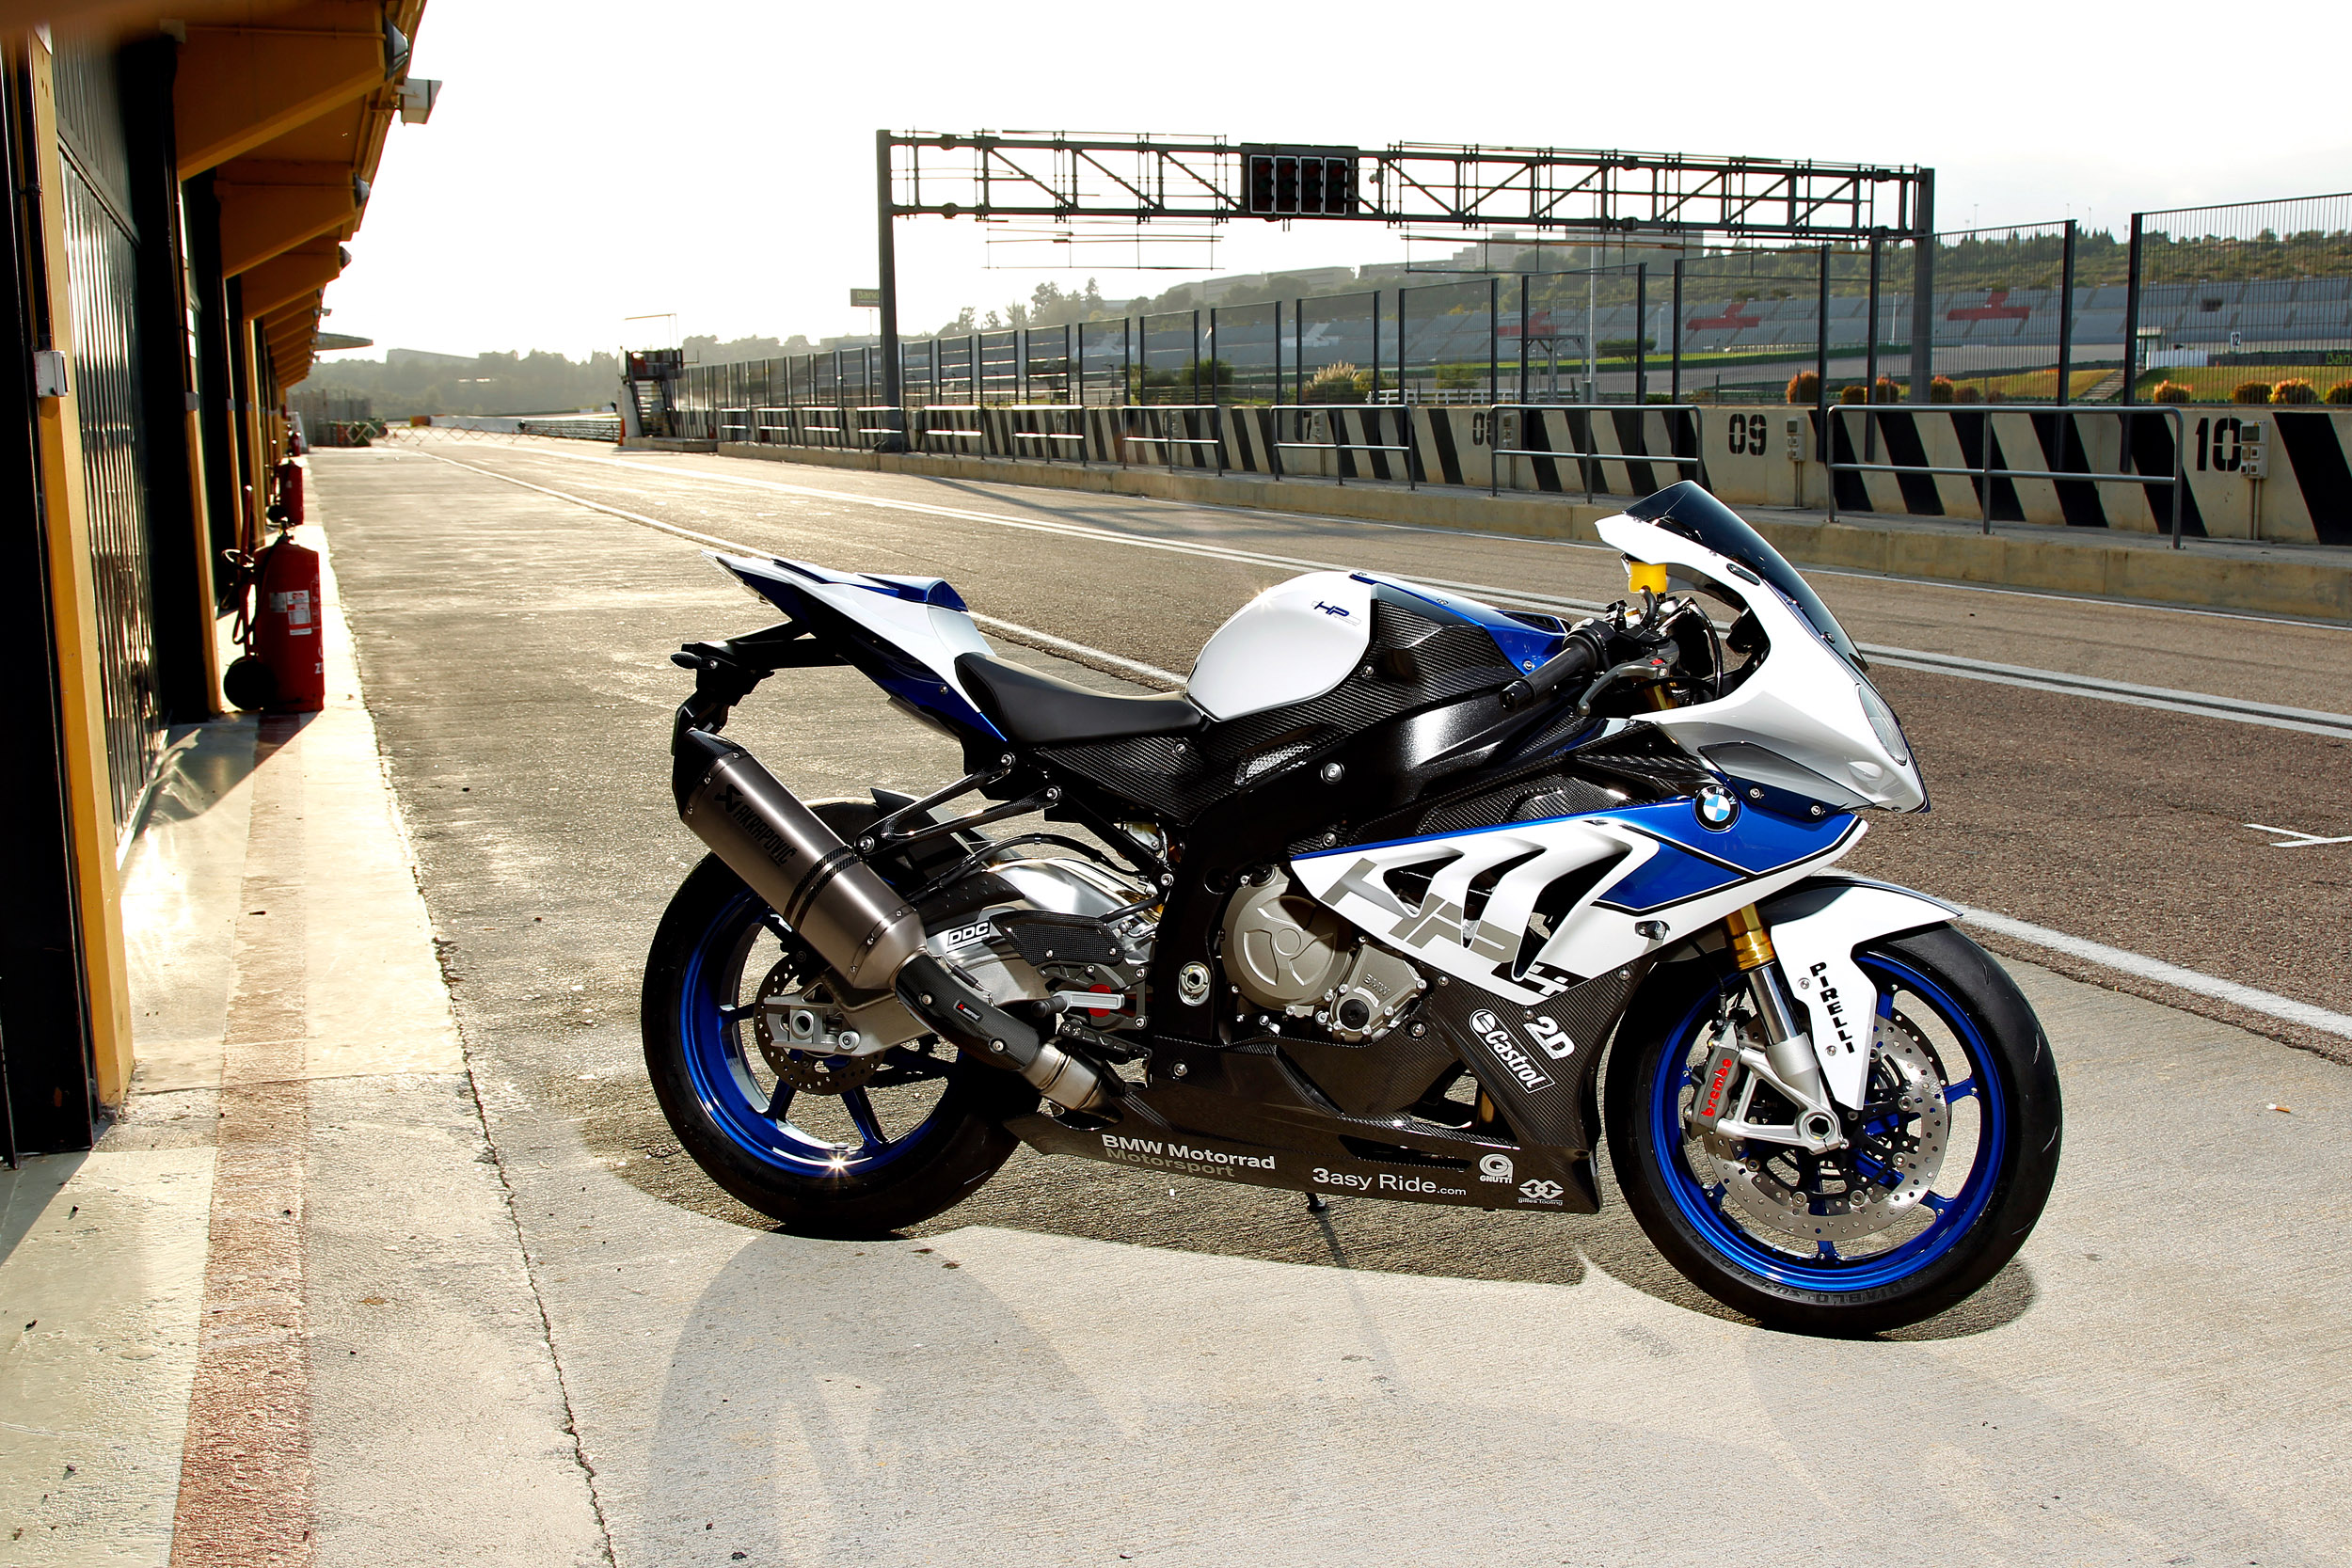 BMW HP4 4K Widescreen Desktop Wallpaper 1006 2500x1667 px 2500x1667